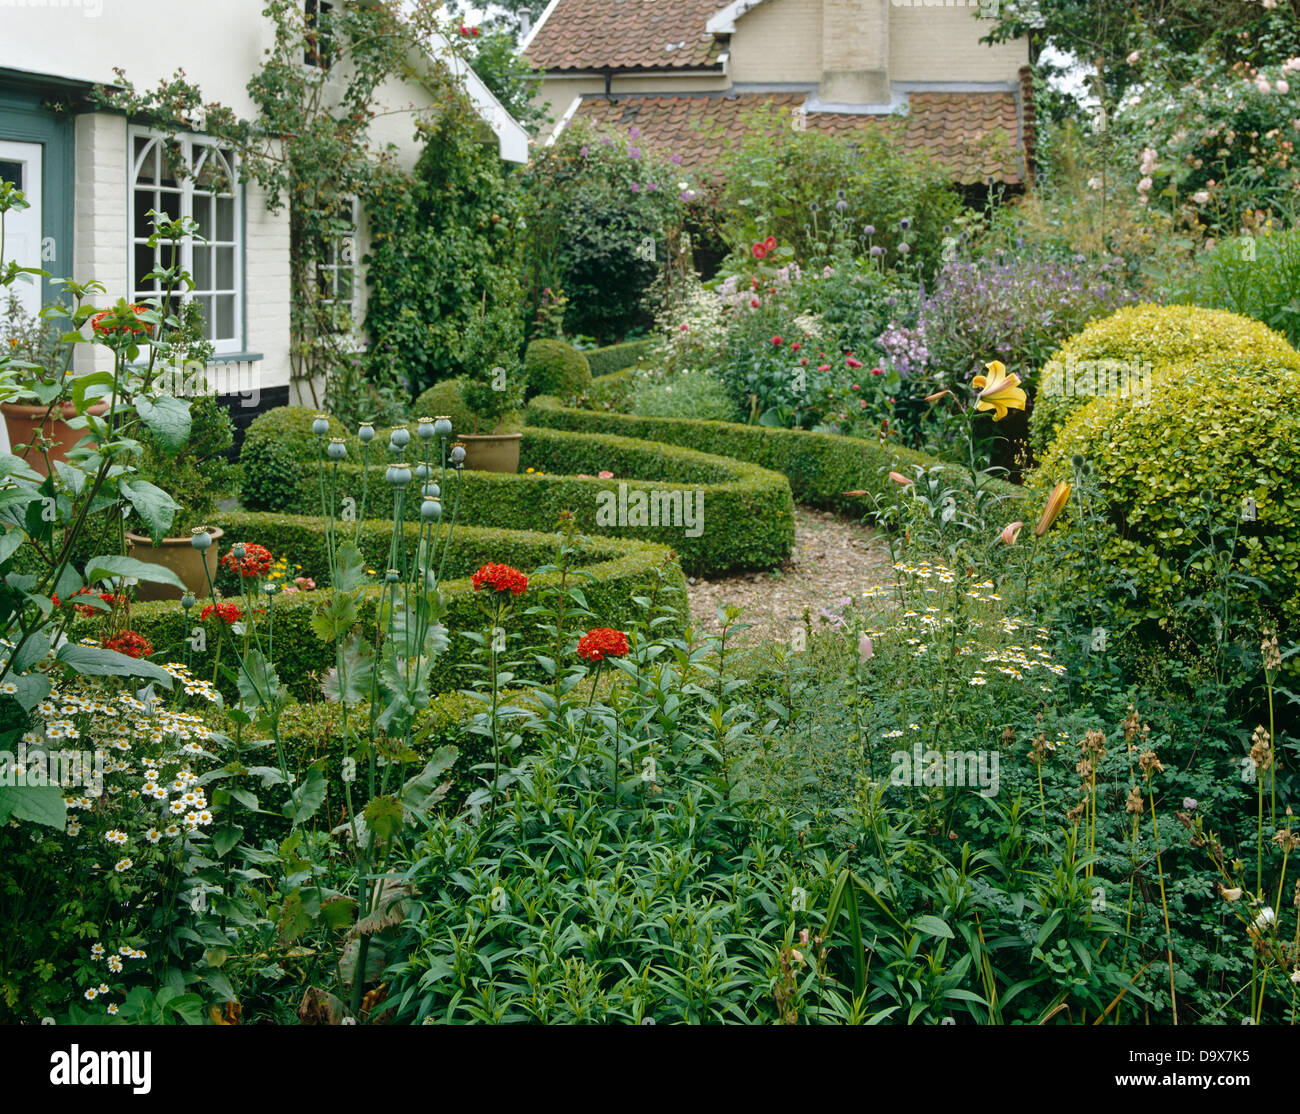 English Cottage Garden With Gravel Path And Low Clipped